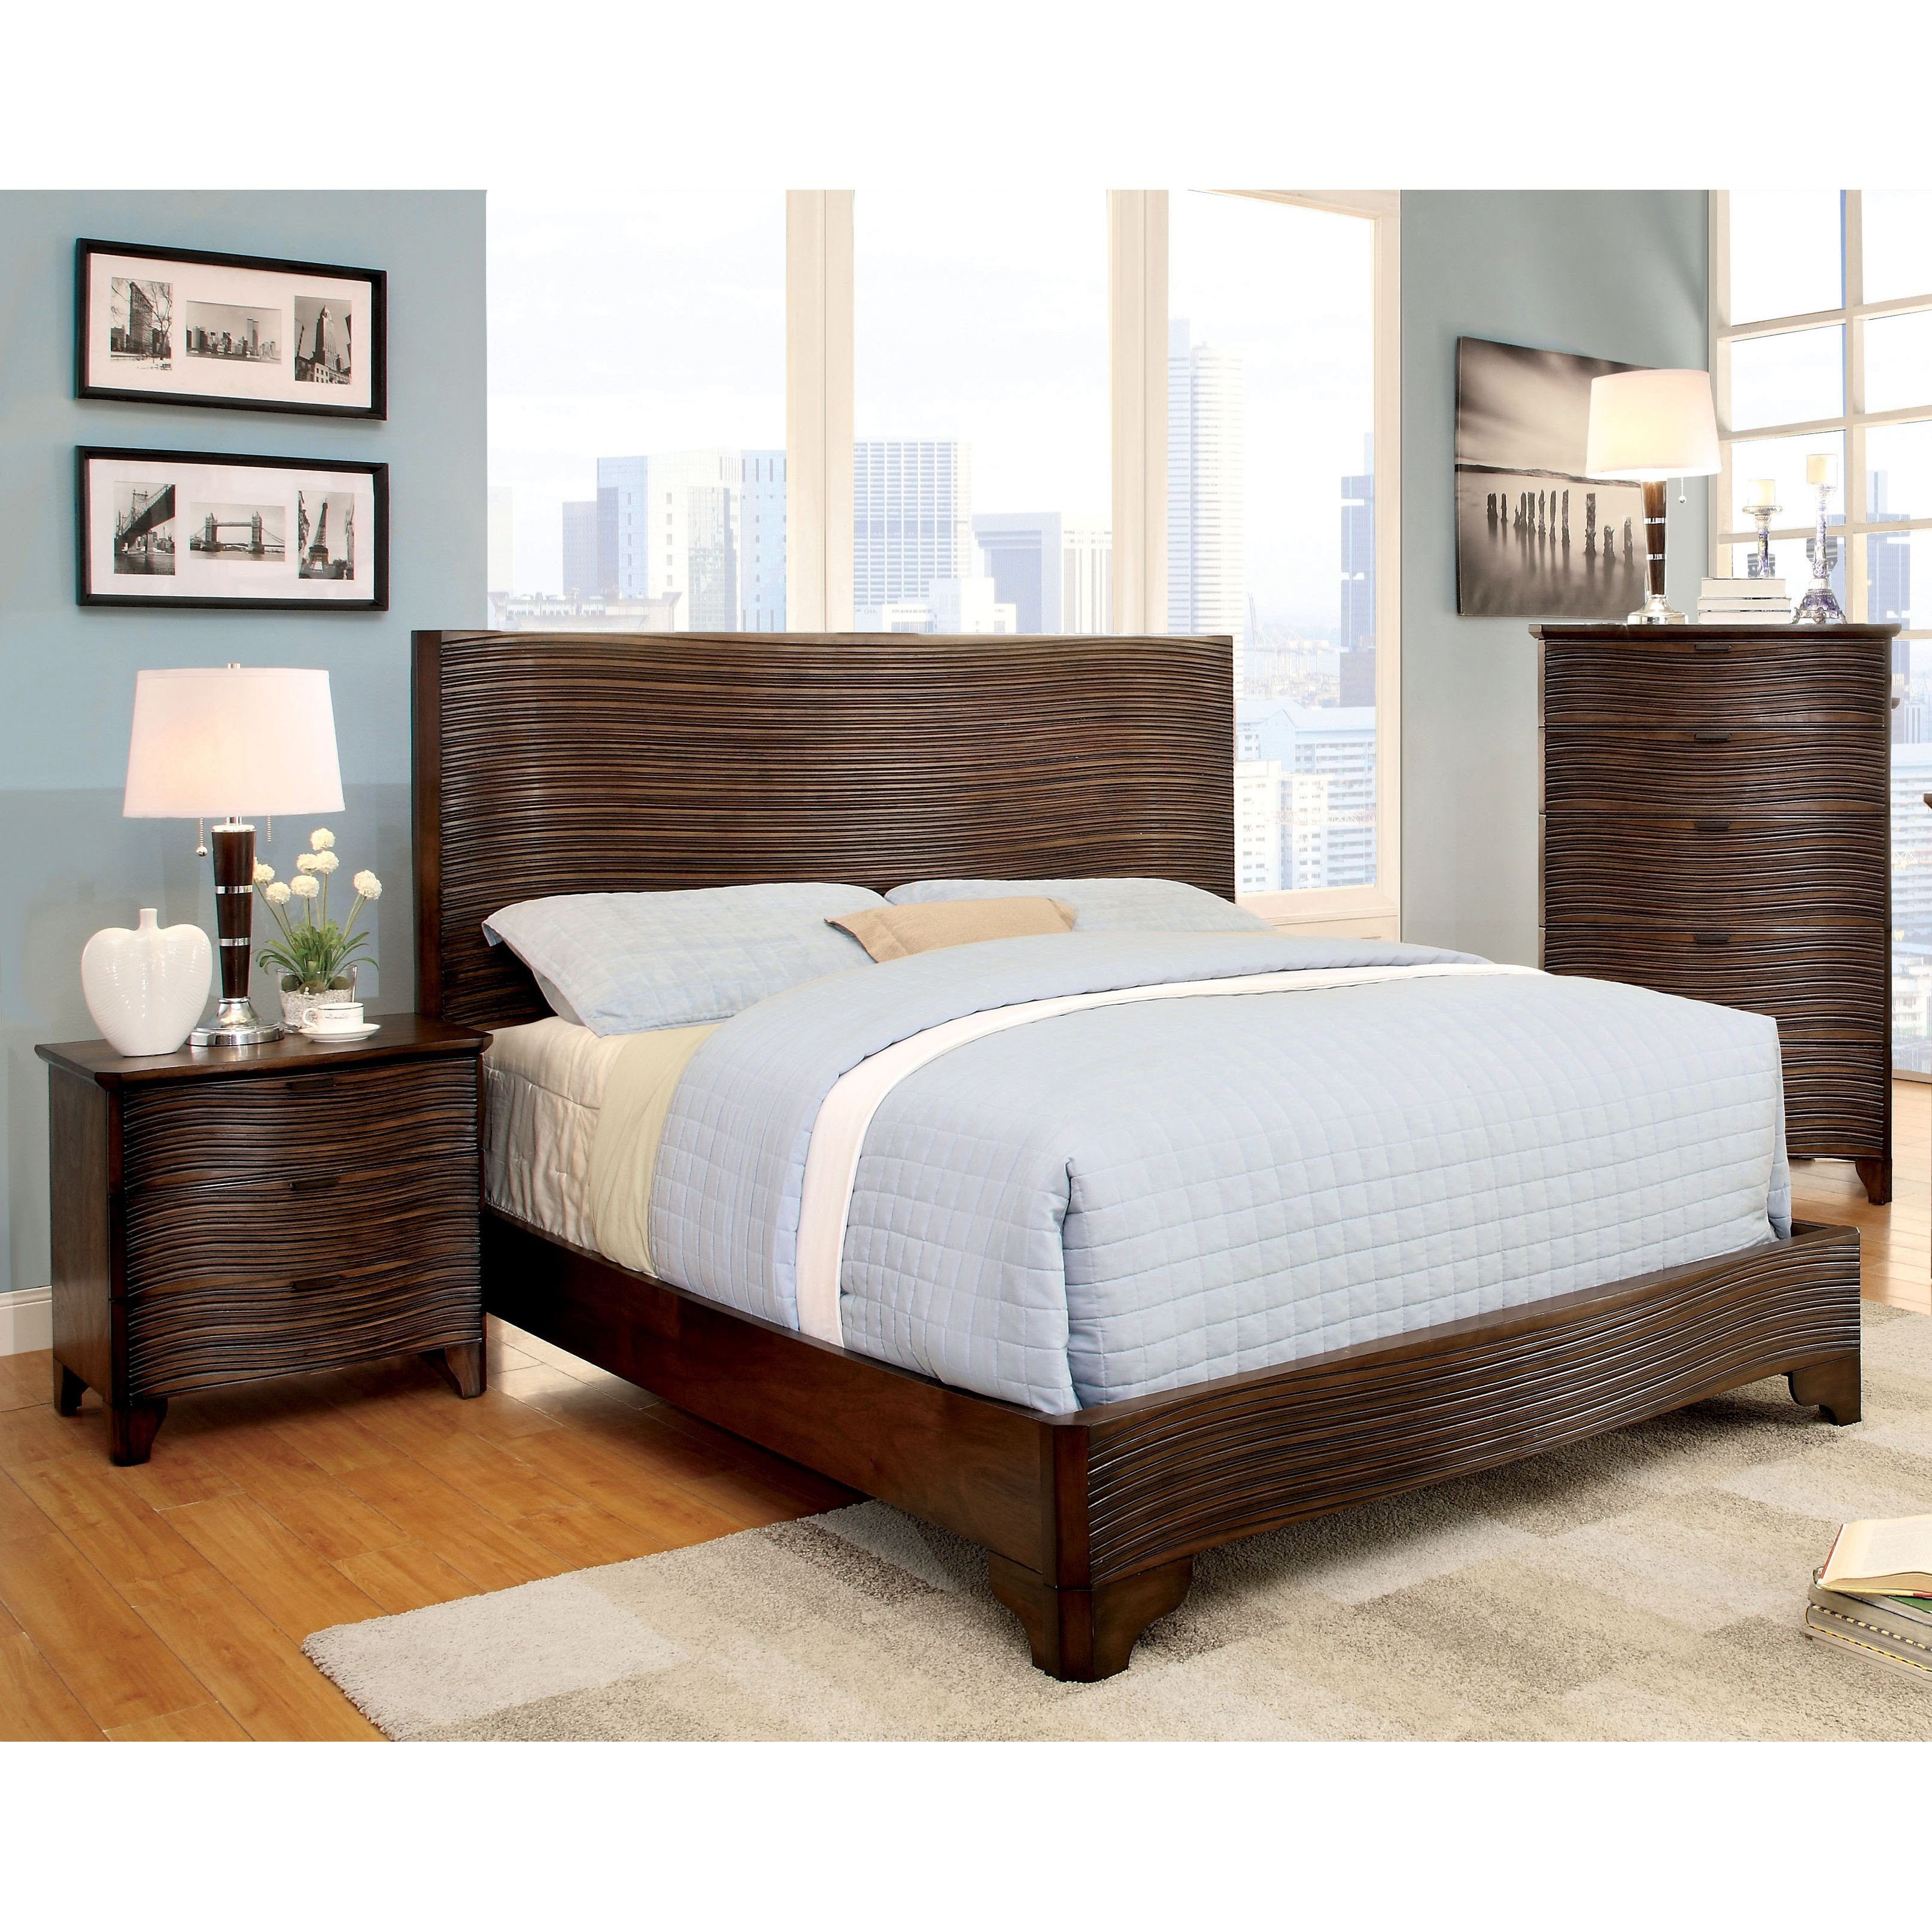 Cheap Bedroom Decor Online Shopping Inspirational Furniture Of America Titanean 2 Piece Textured Rustic Bed